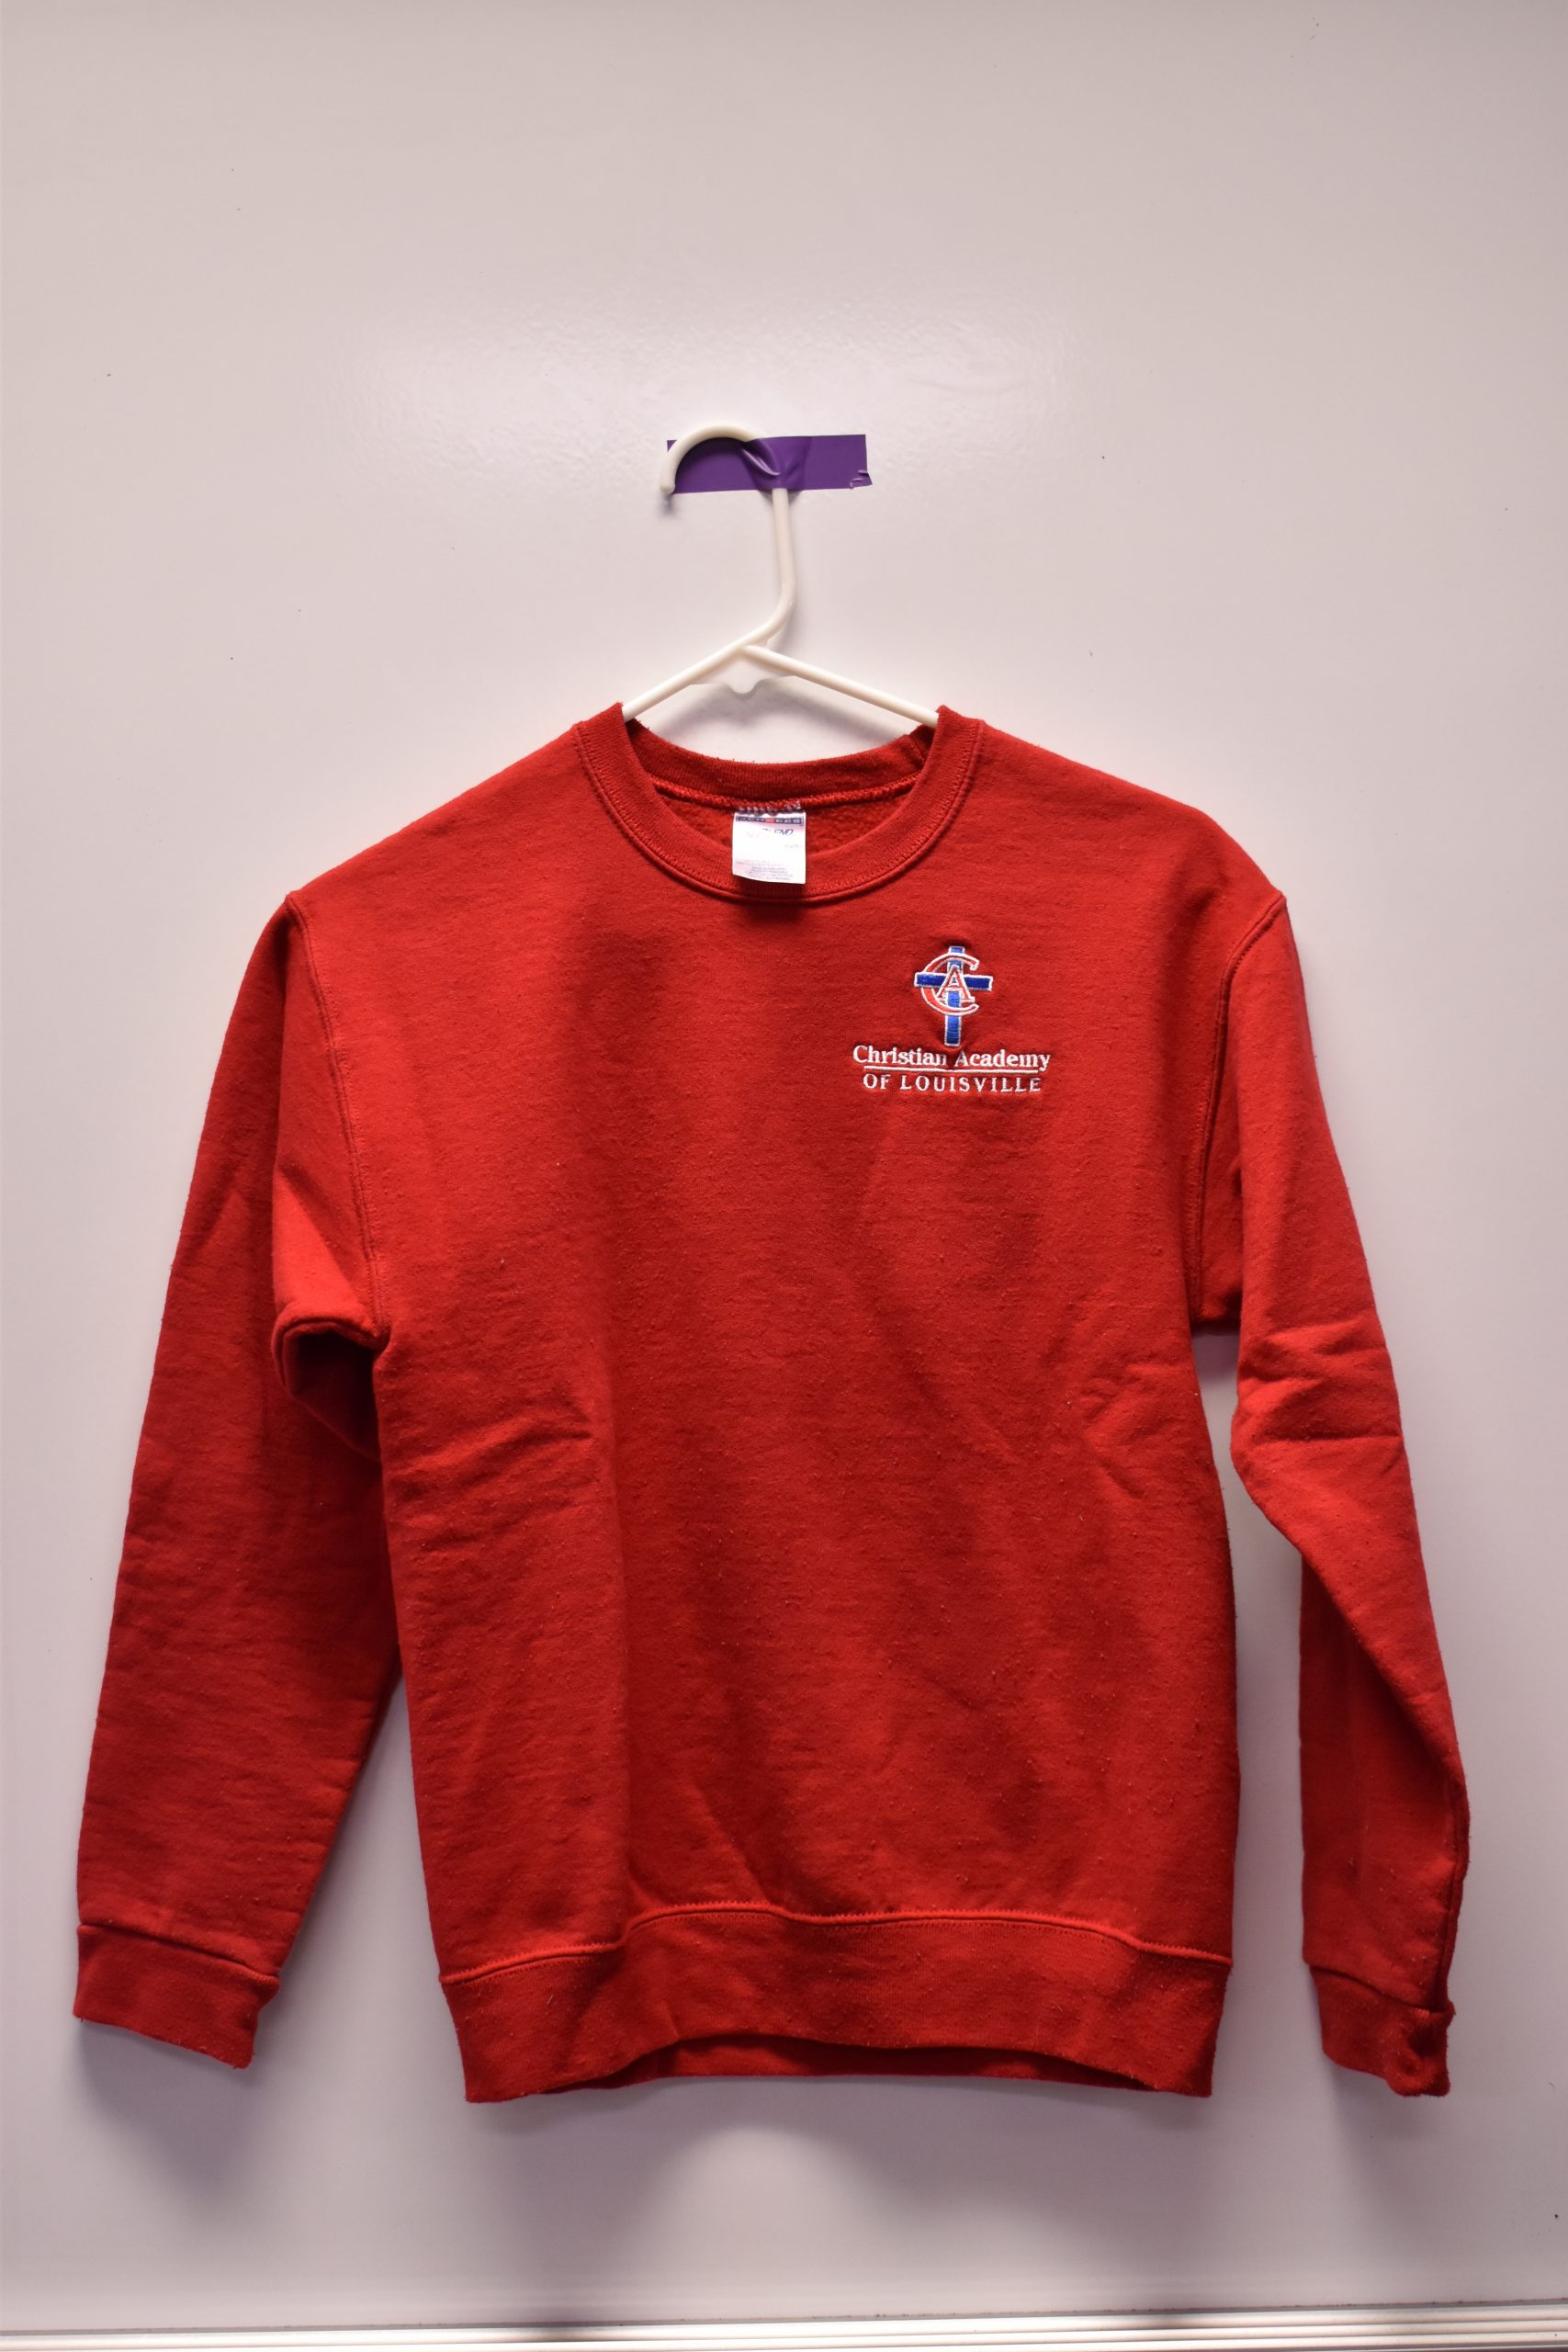 Christian Academy School System | Christian Academy of Louisville | Virtual Uniform Closet | Uniform | Sweatshirt